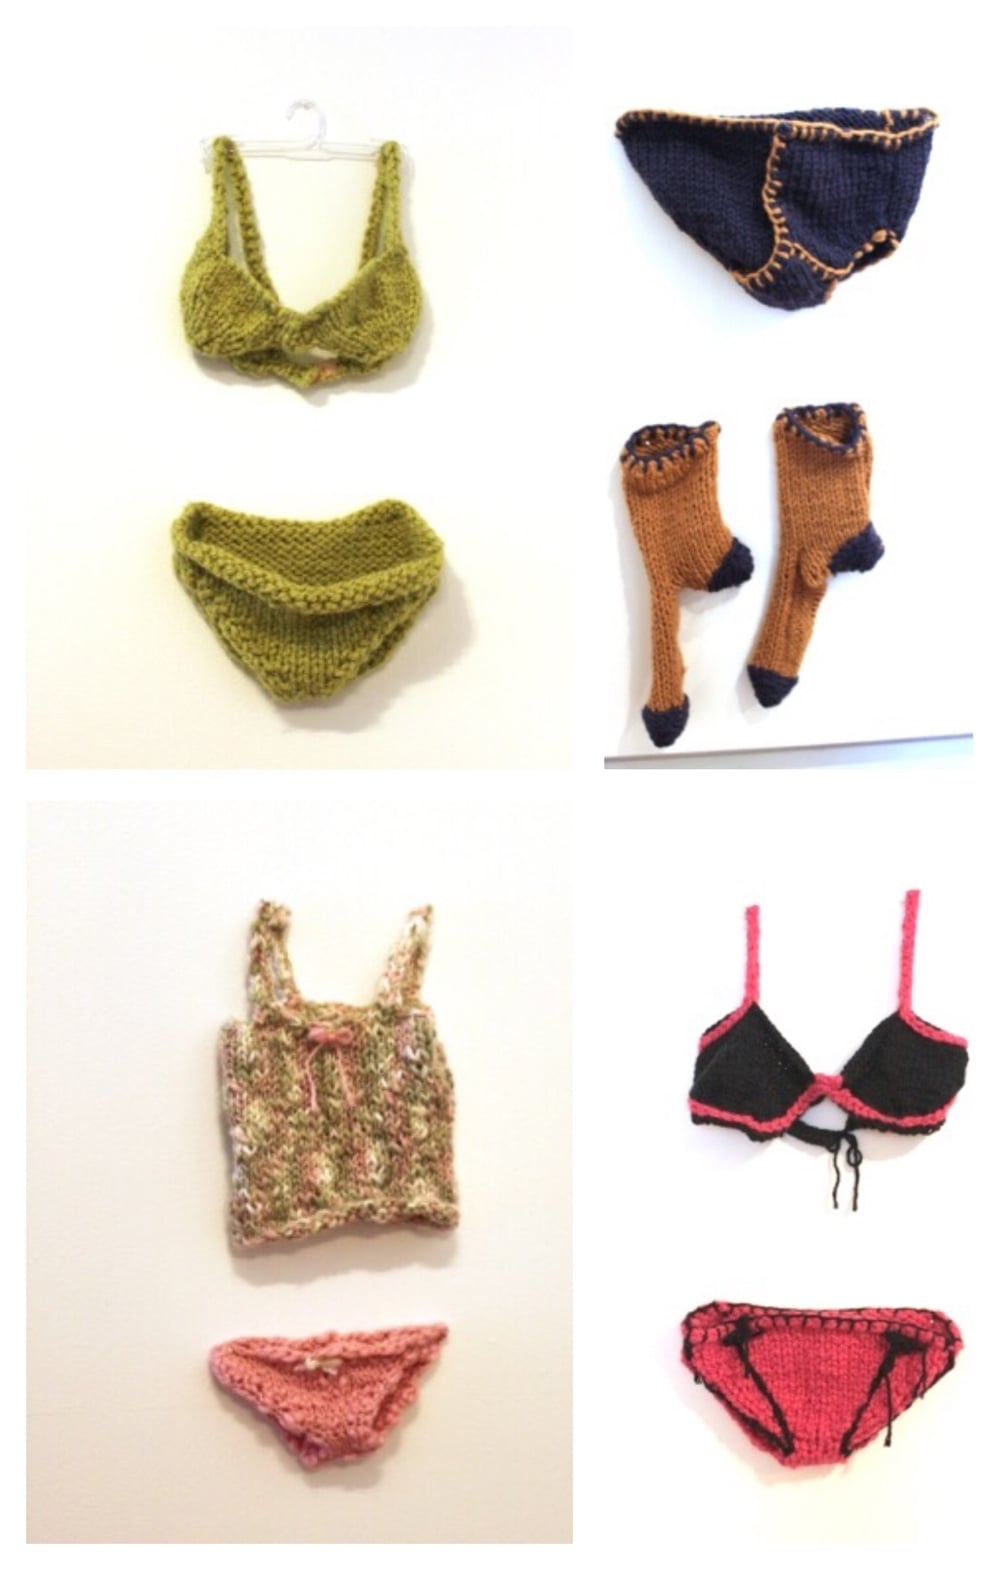 Lada Dedic The Bare Essentials  Socks and Jocks for the whole family  Knitted Object, 2010 Dimensions Variable